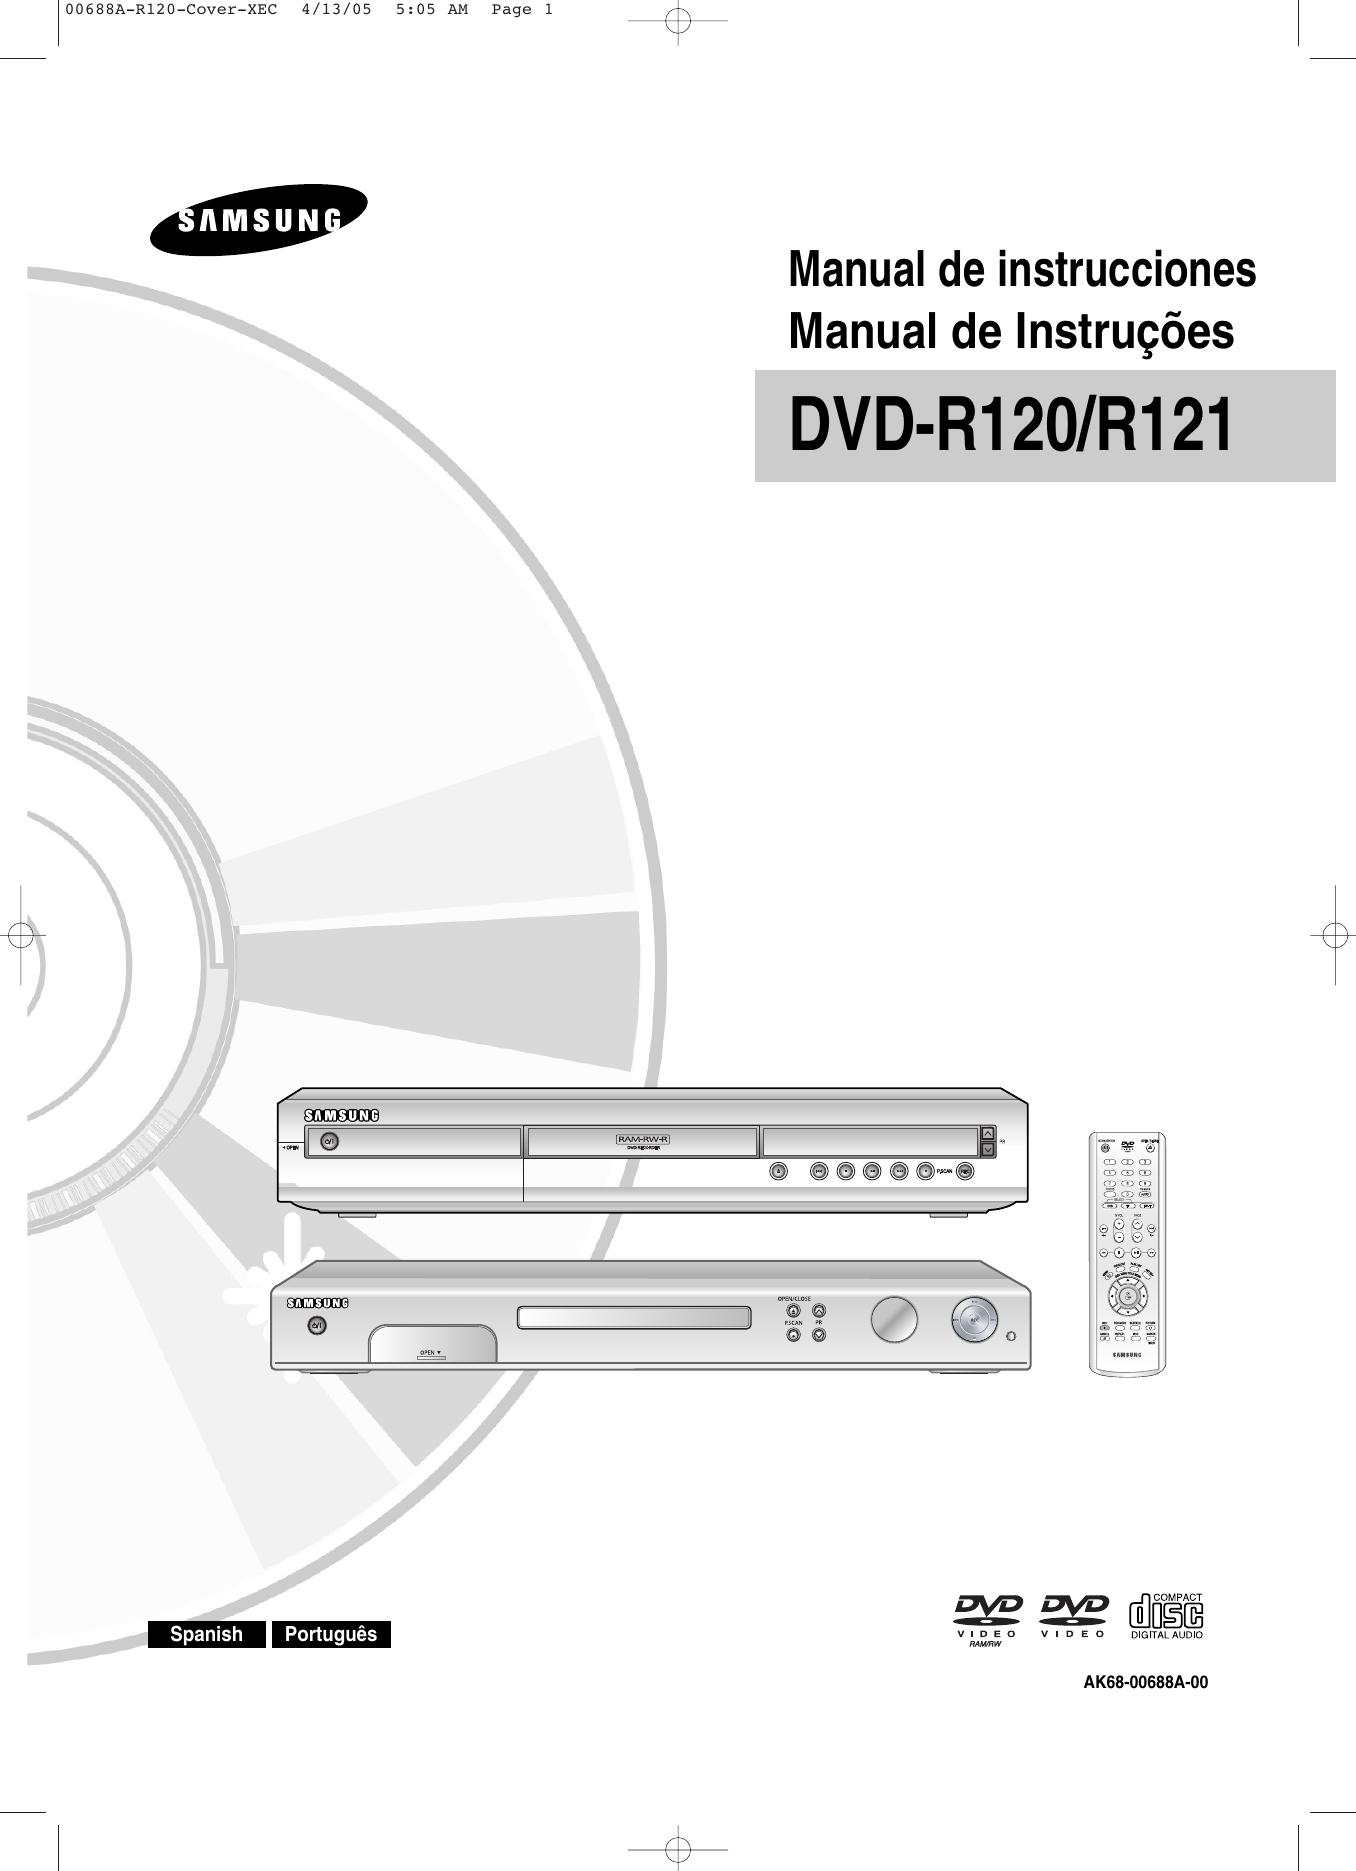 Page 15 of samsung dvd recorder dvd-r120 user guide.